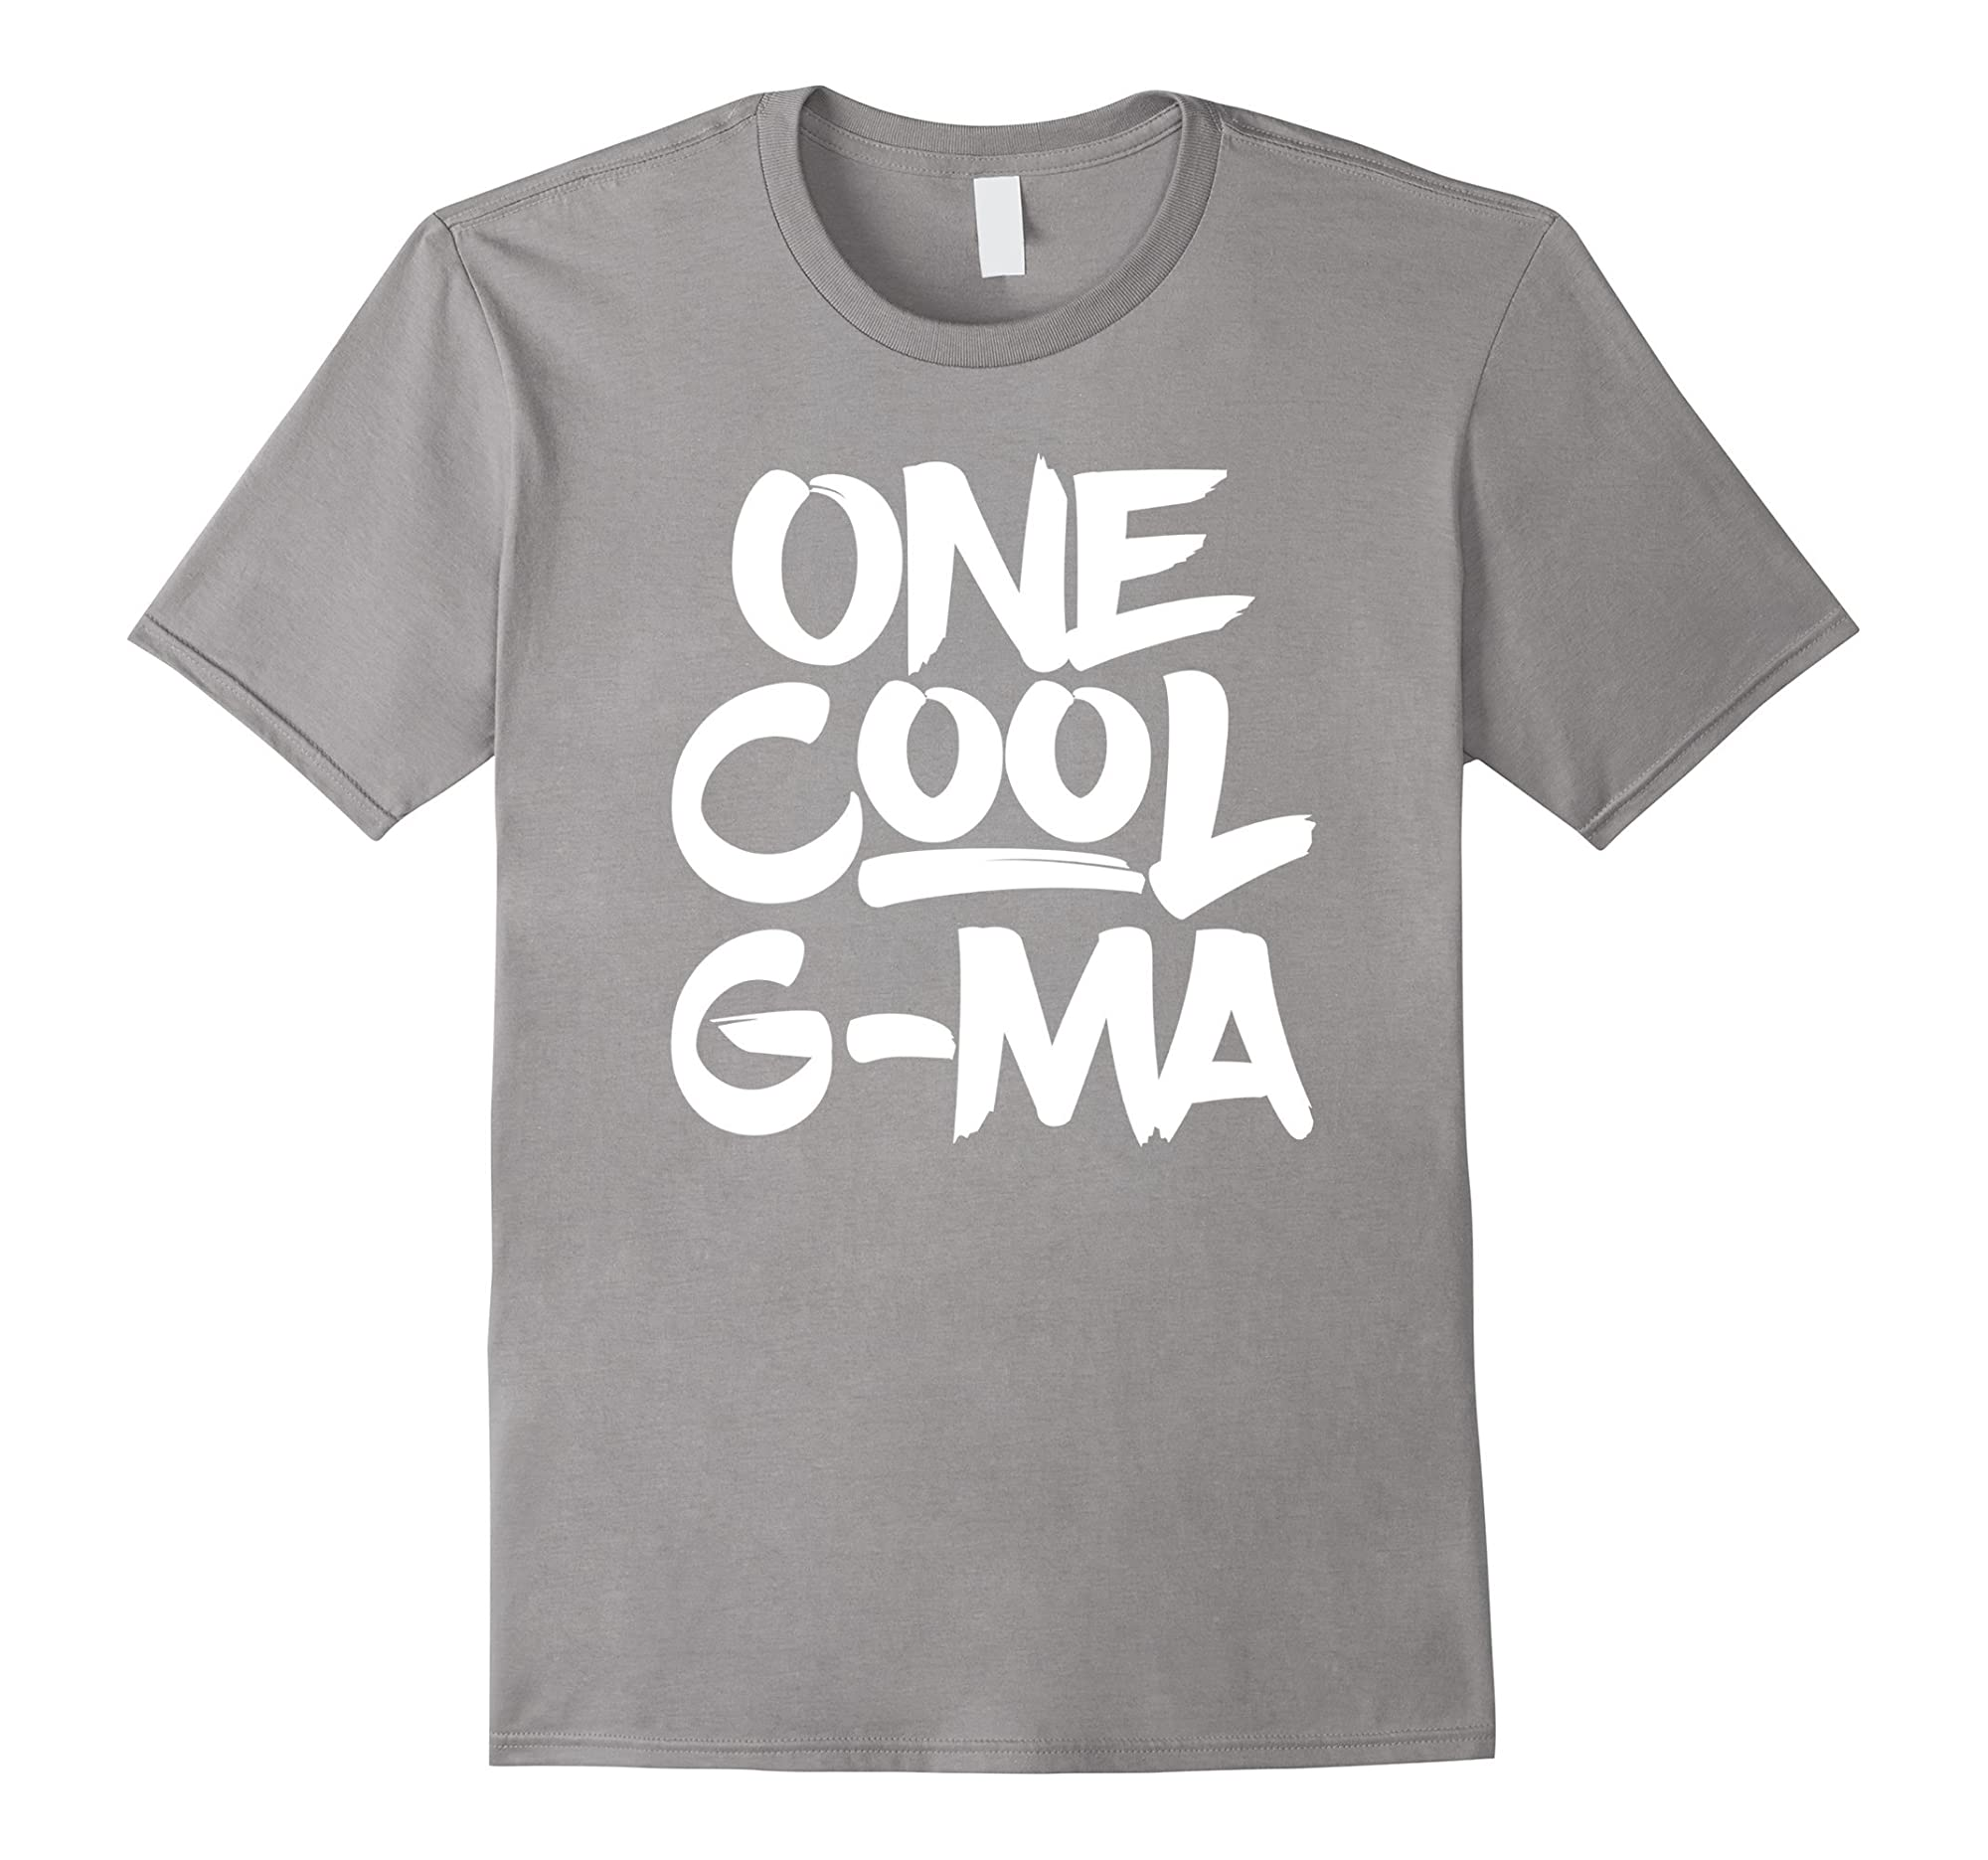 One Cool G-ma T Shirt - Grandmother Mothers Day Gift Tee